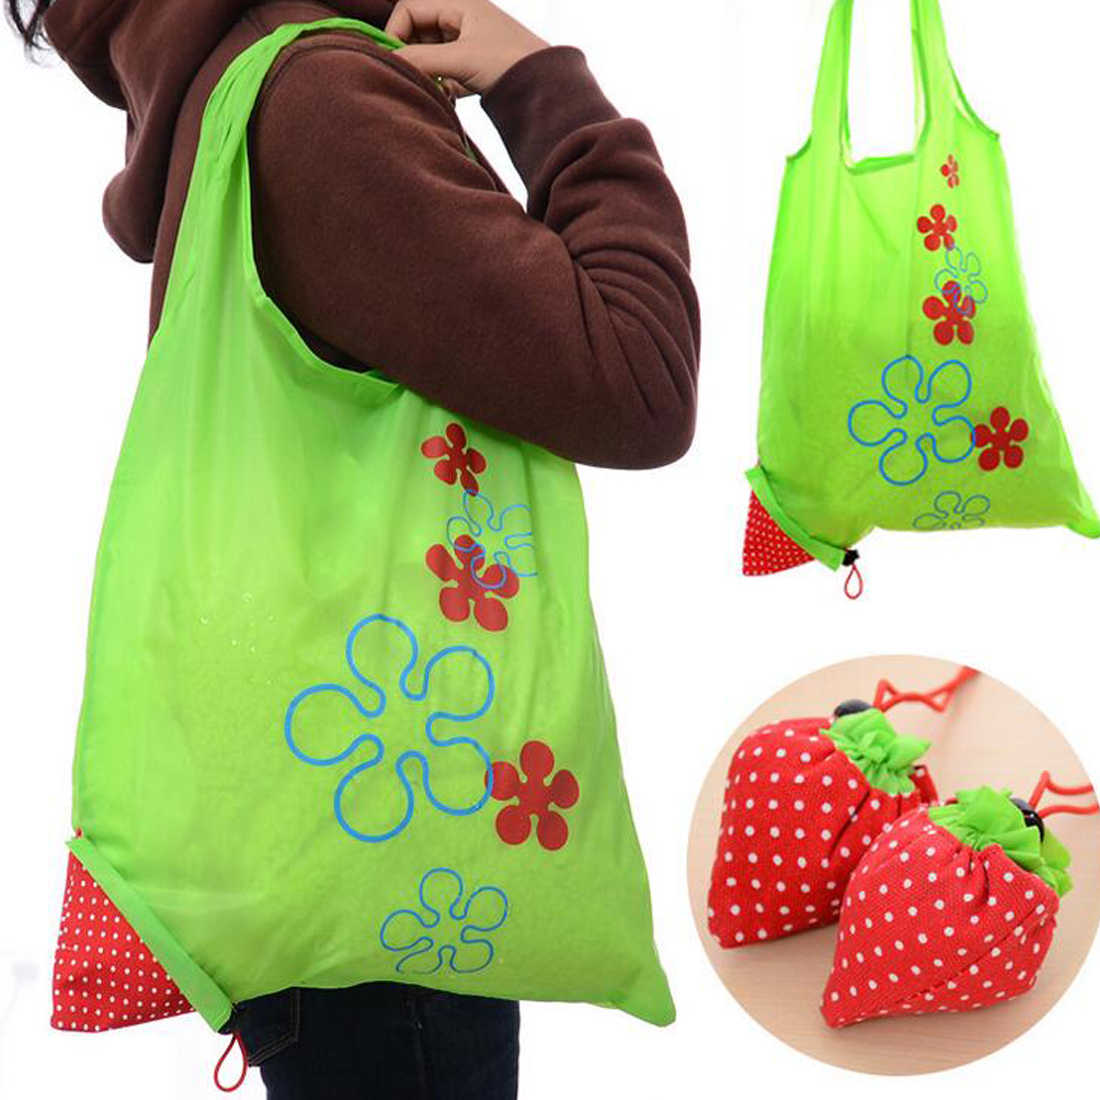 Top Sale Nylon Foldable Reusable Bags Strawberry Tote Eco Storage Handbag for Groceries Shopping